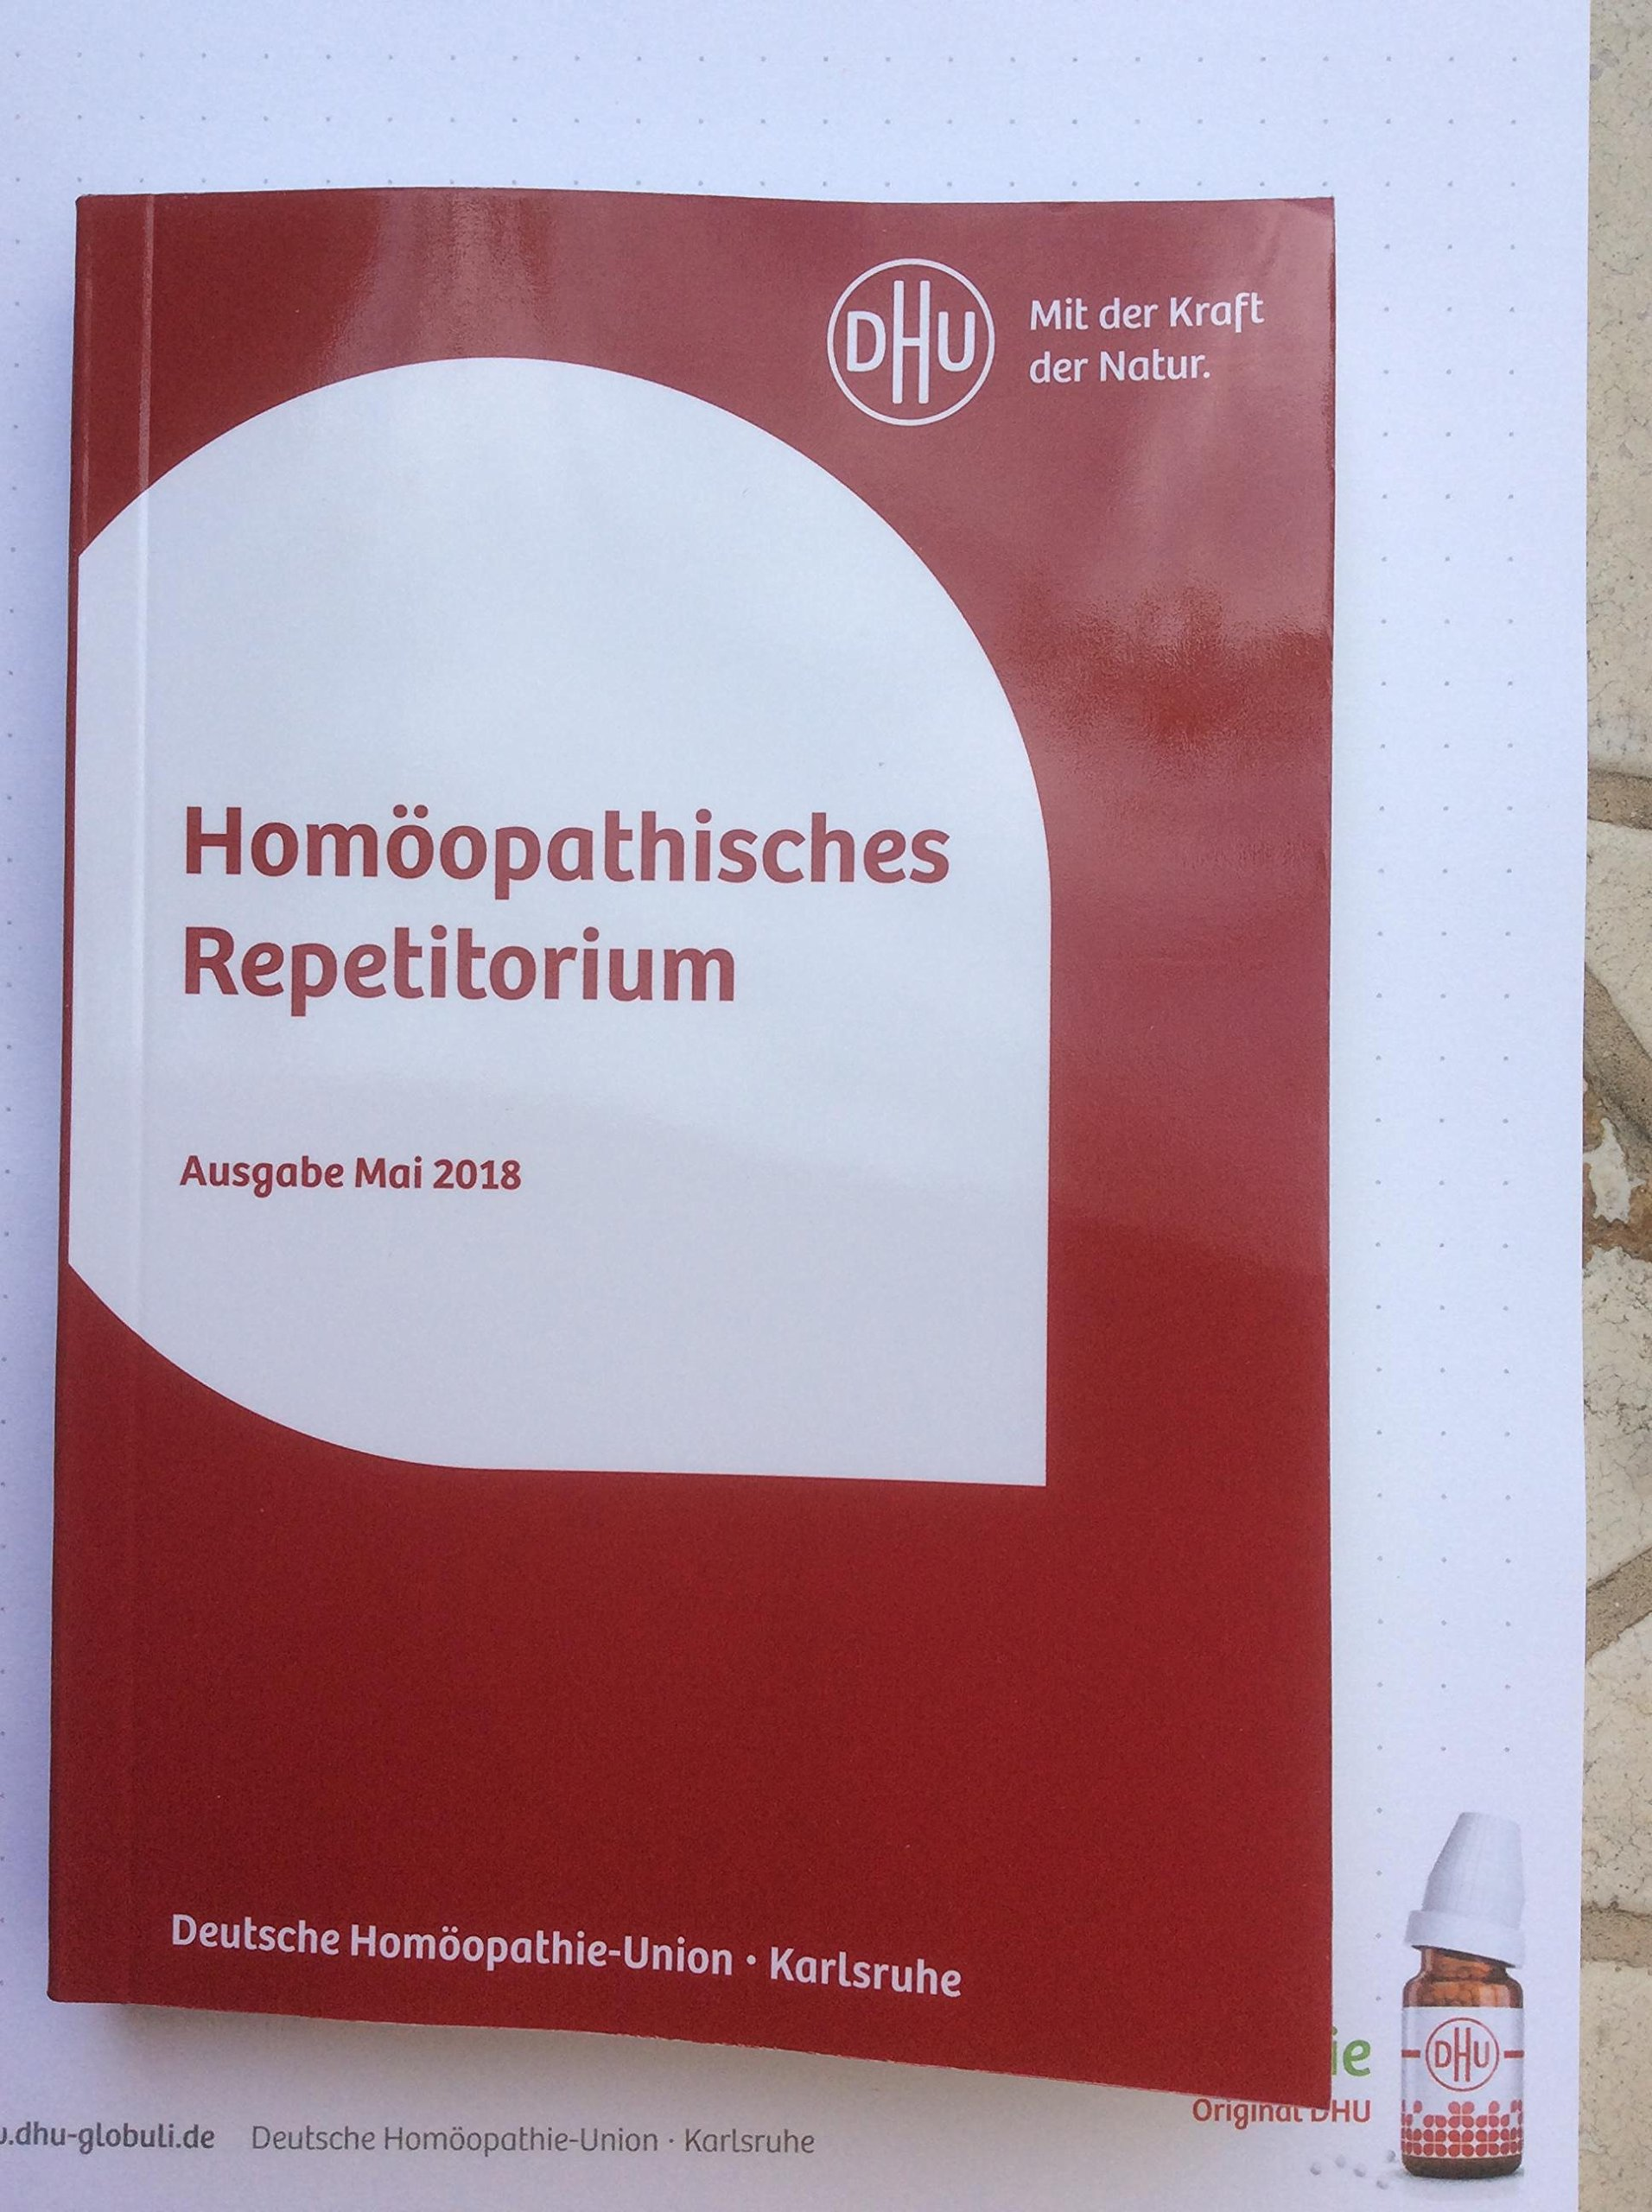 Homöopathisches Repetitorium: Arneimittellehre in Tabellenform